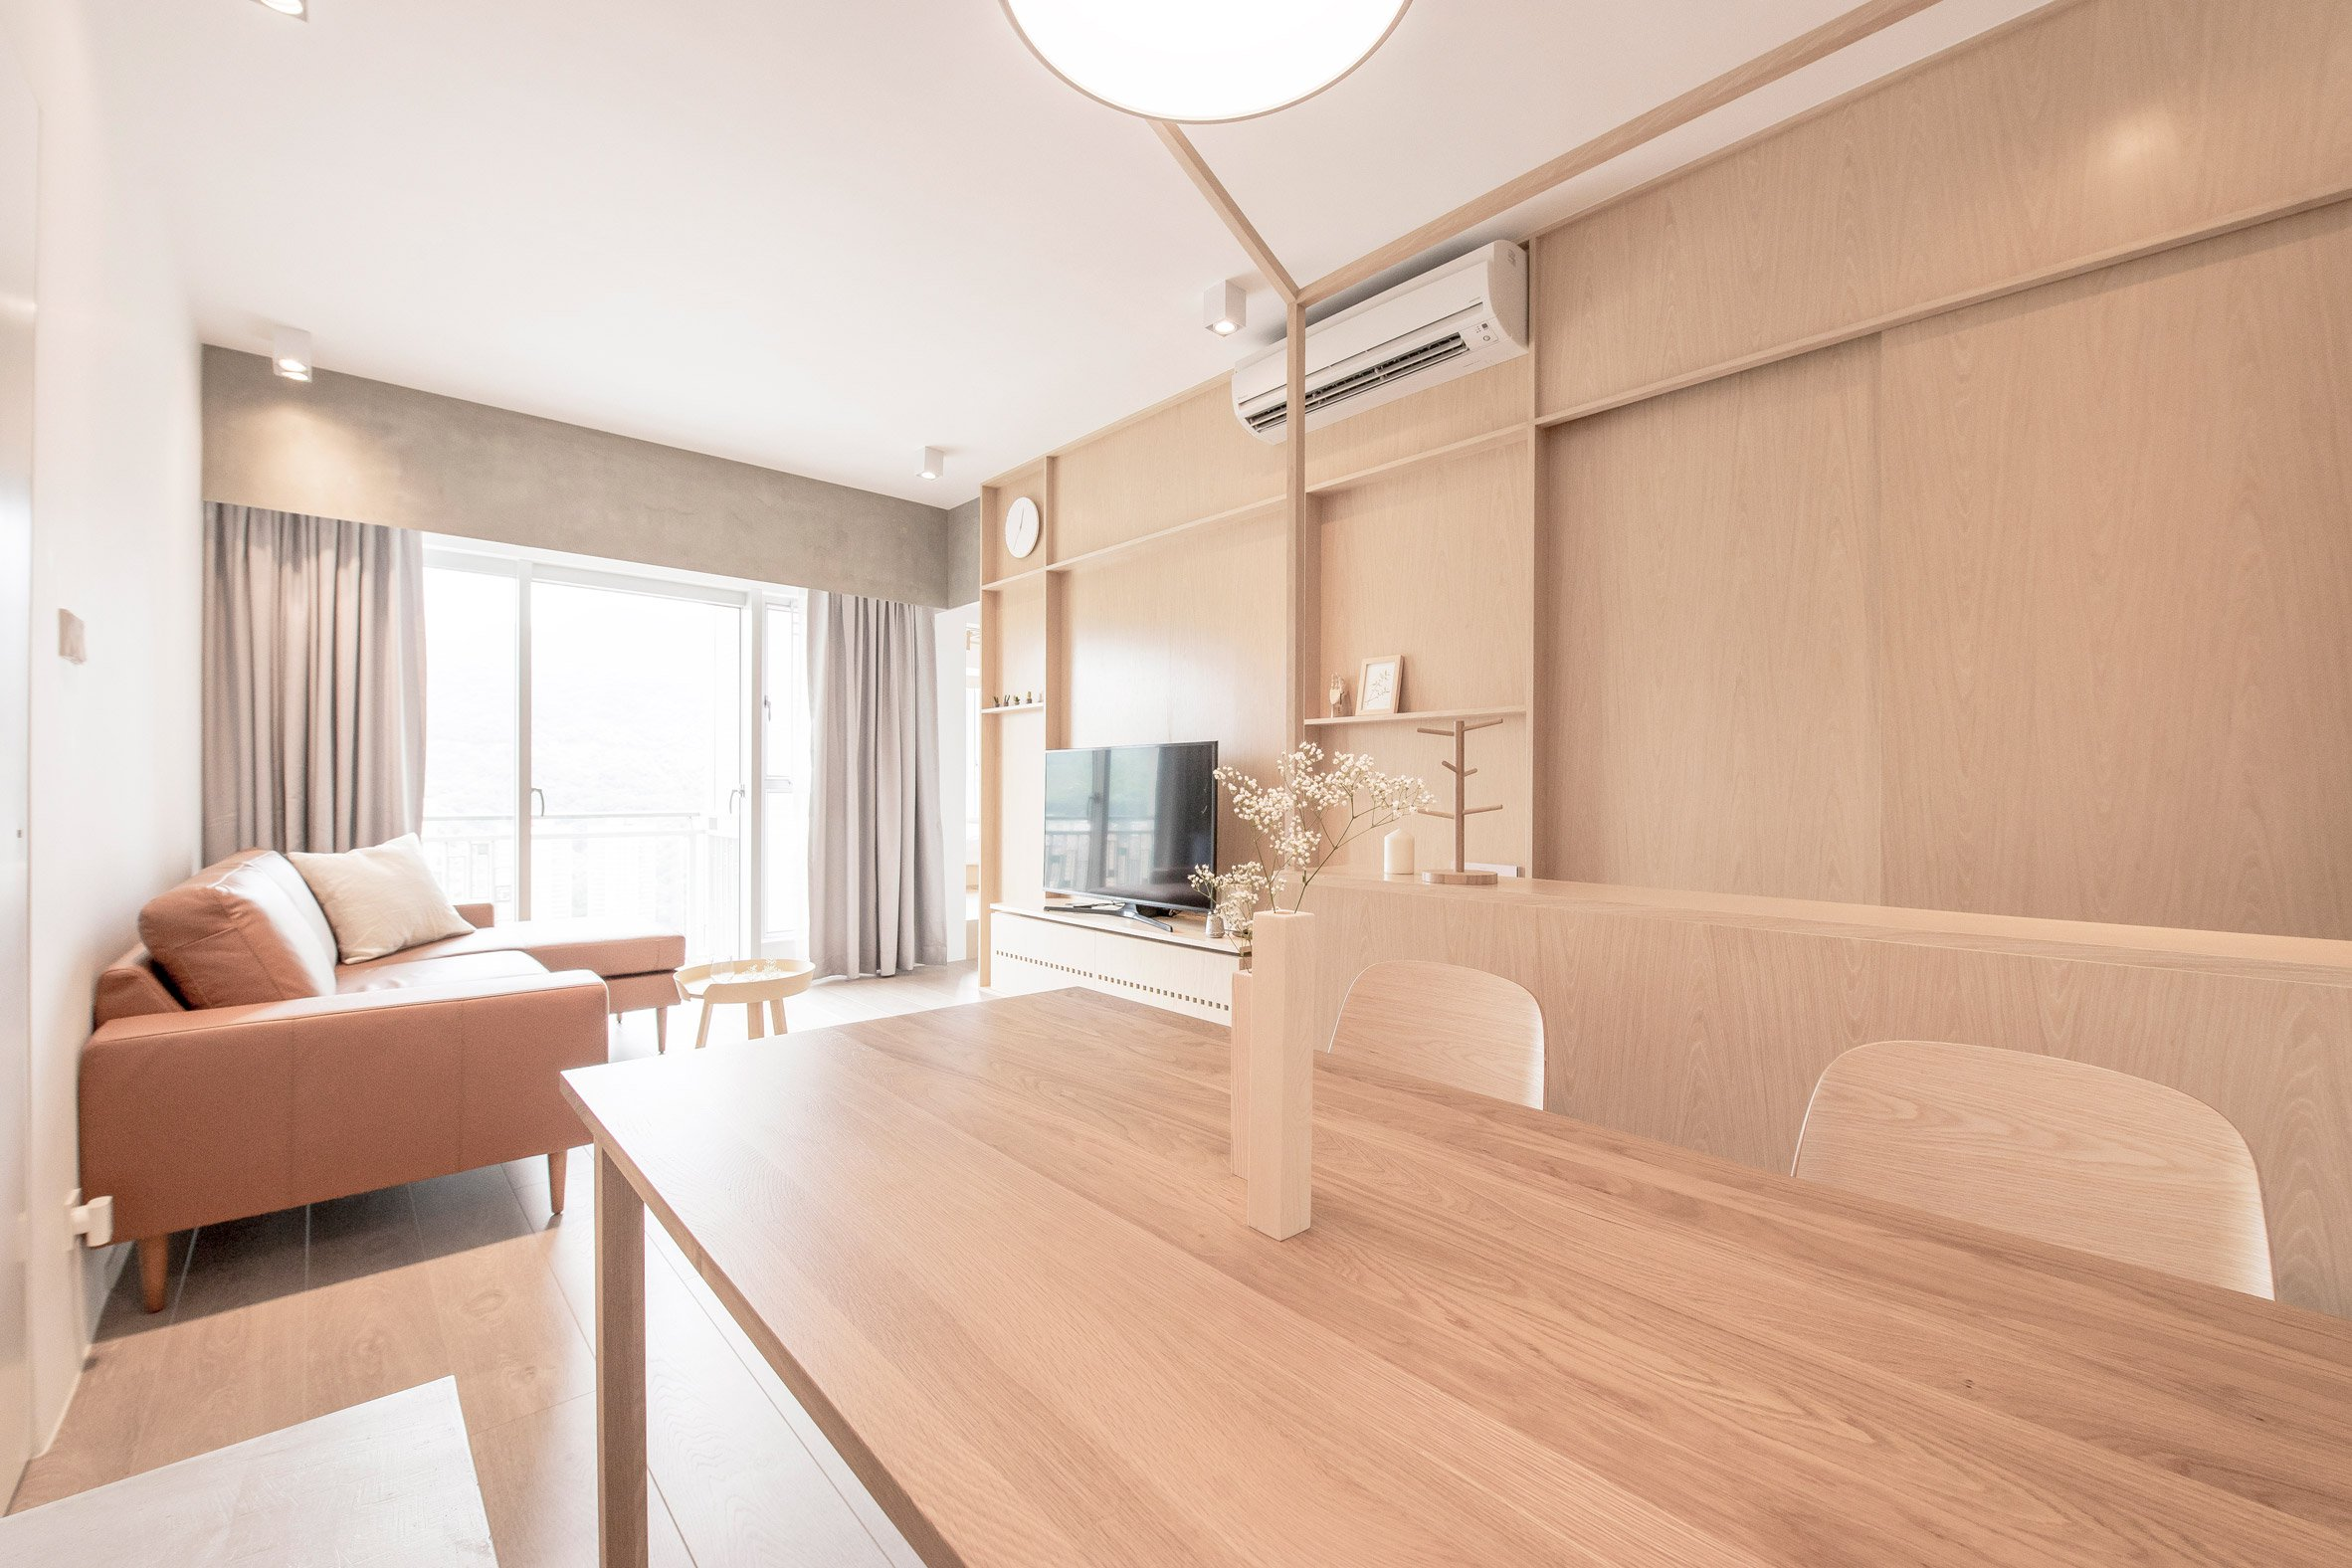 The dining space is united with the living room, and the wood used here is the same